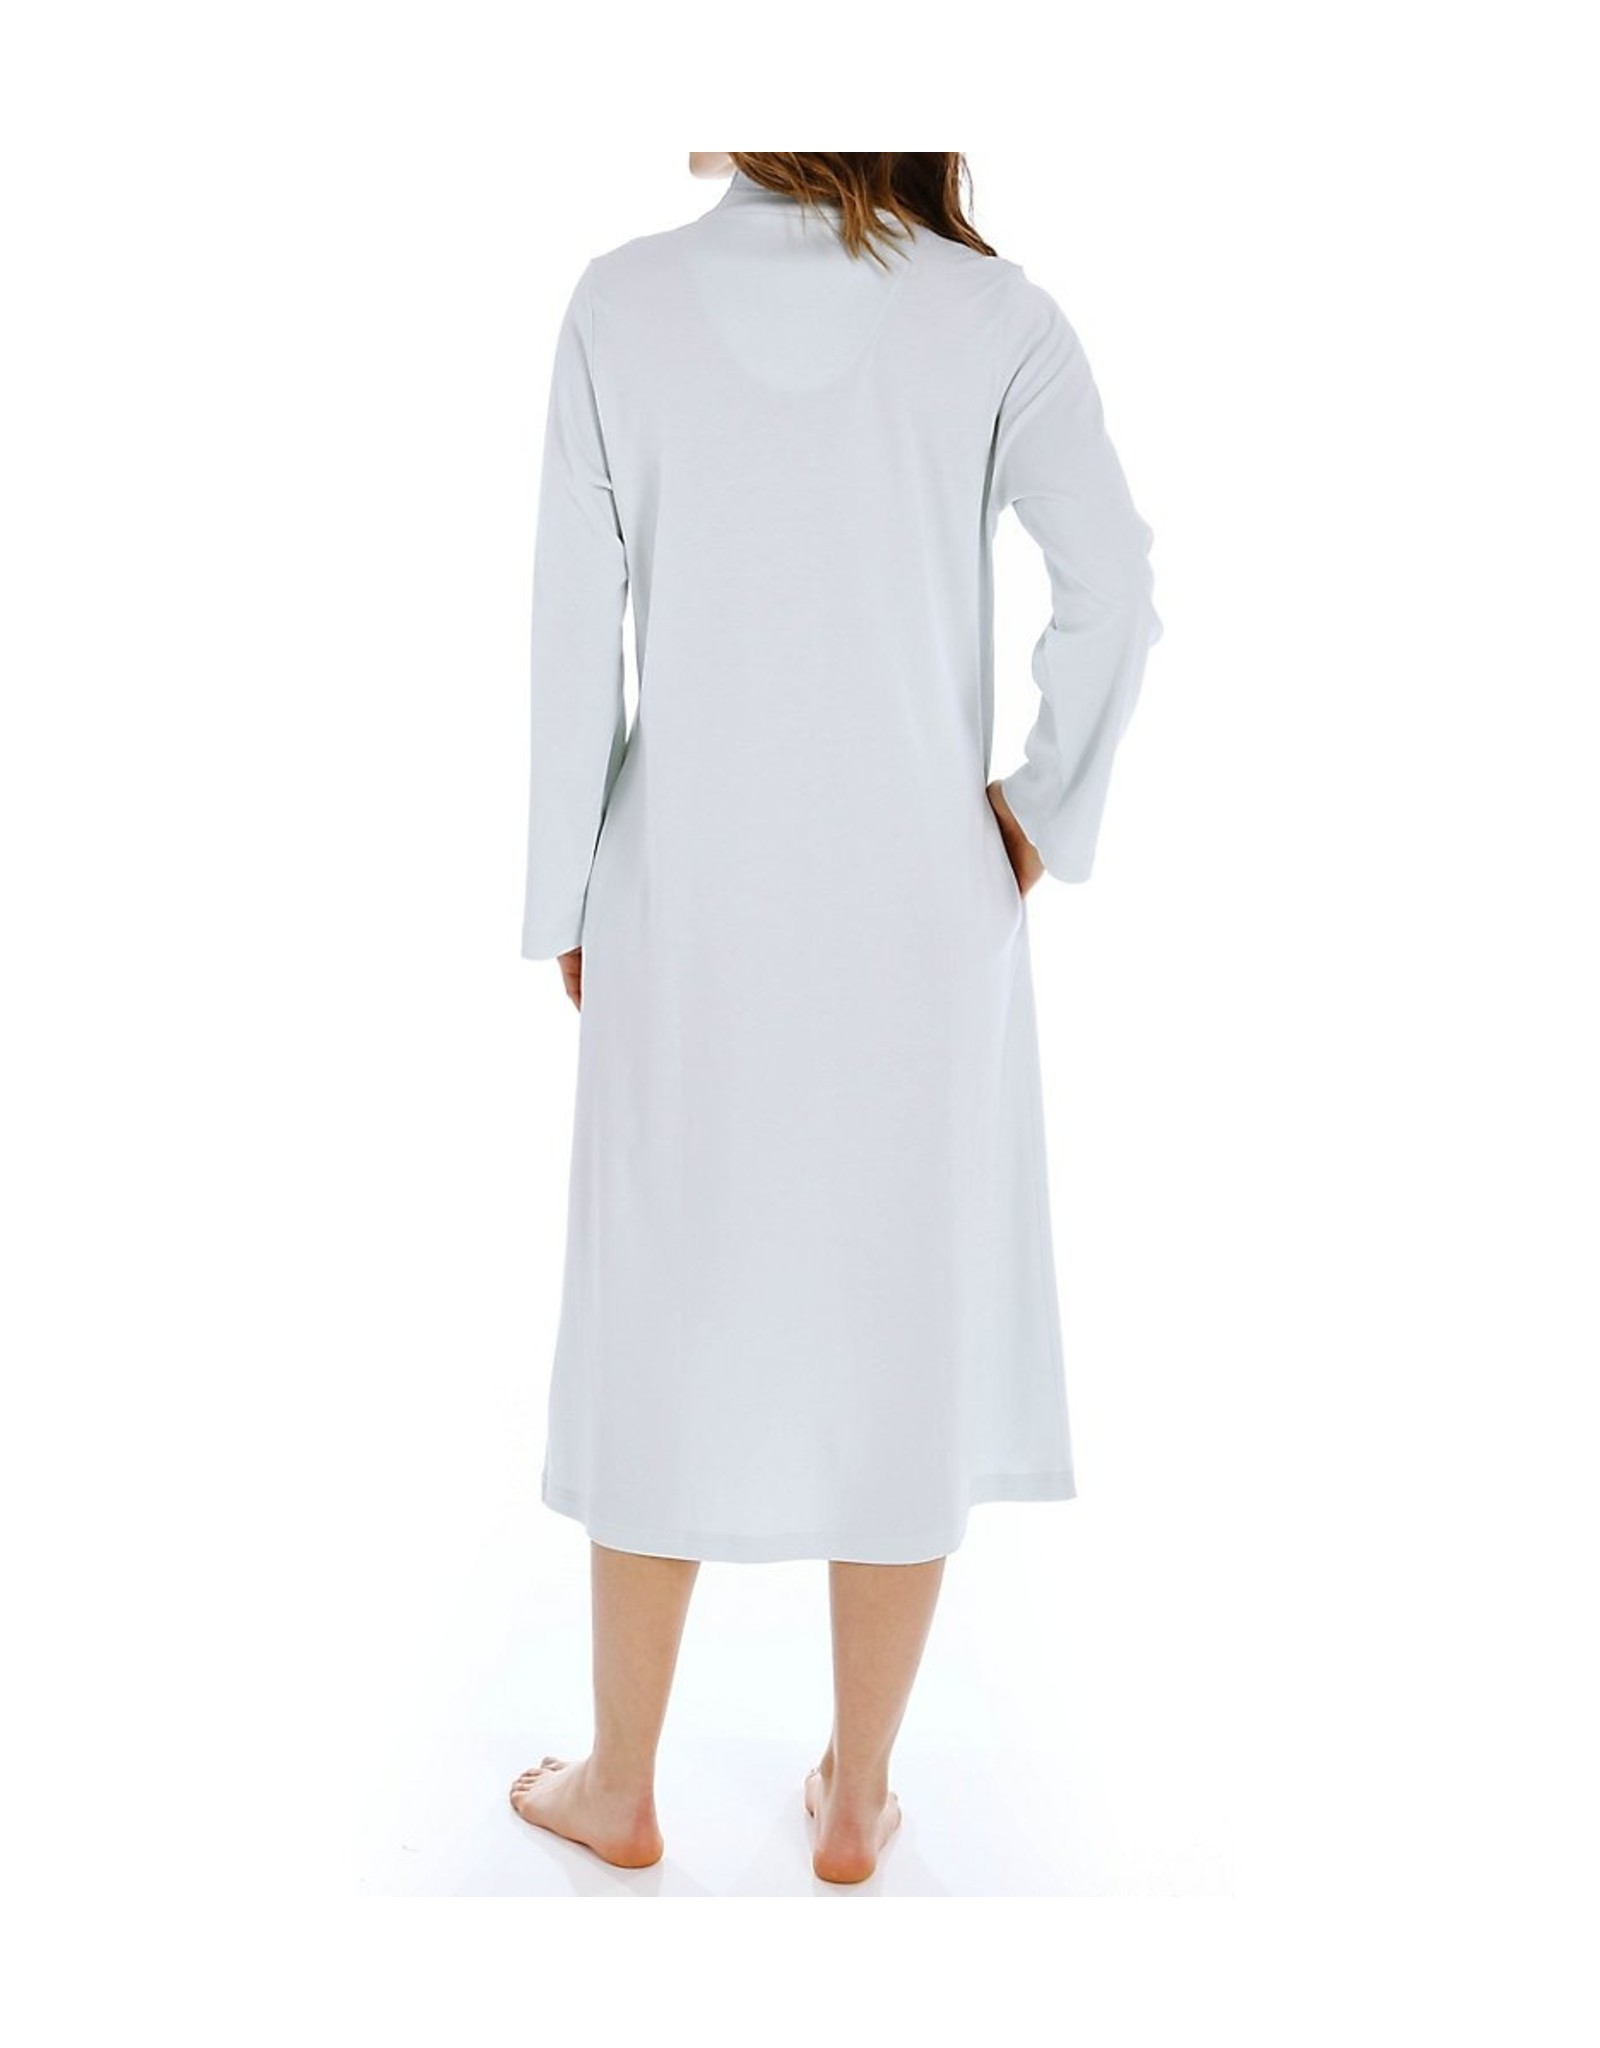 P-Jama New Butterknitt Zipper Robe